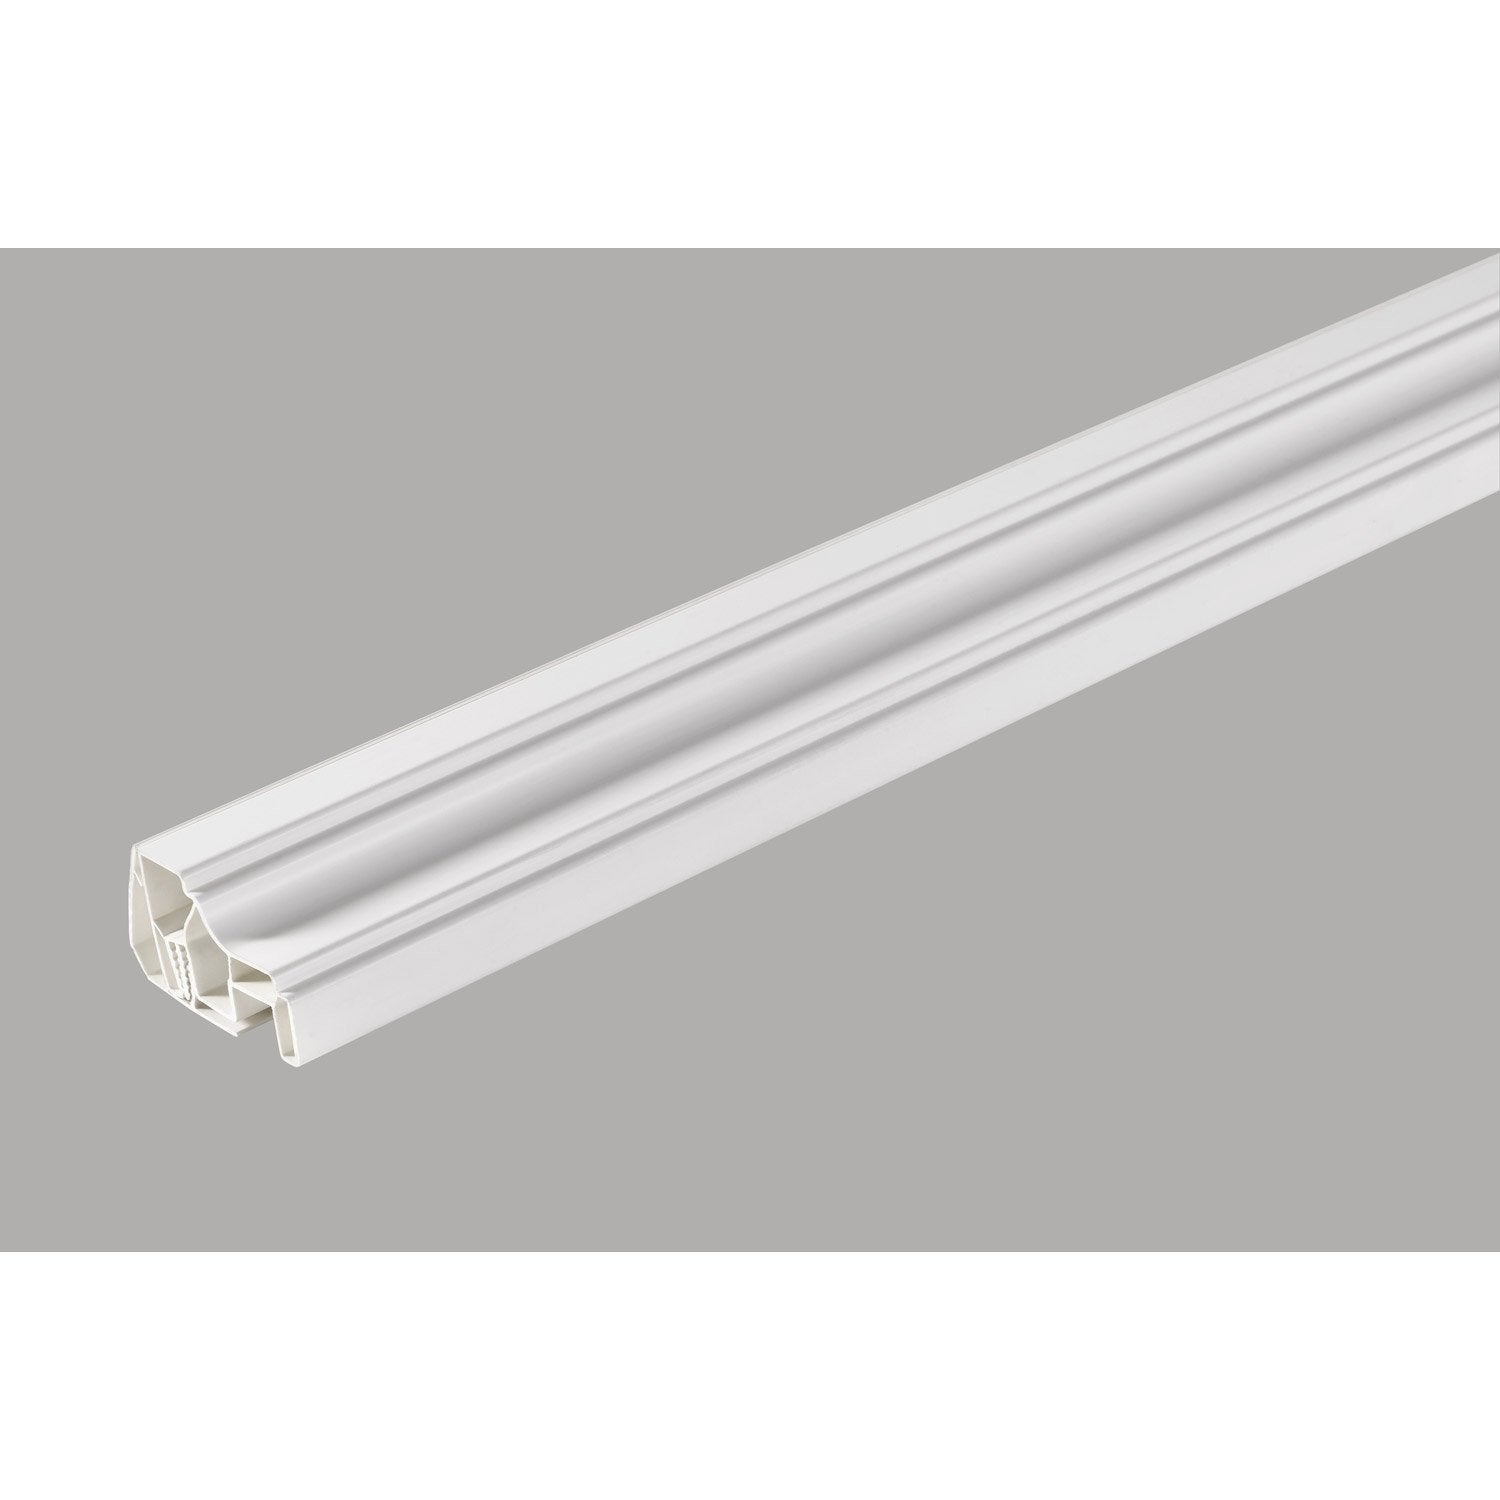 Profil de finition clipsable pvc blanc 260x4x5cm leroy merlin - Leroy merlin lambris pvc ...